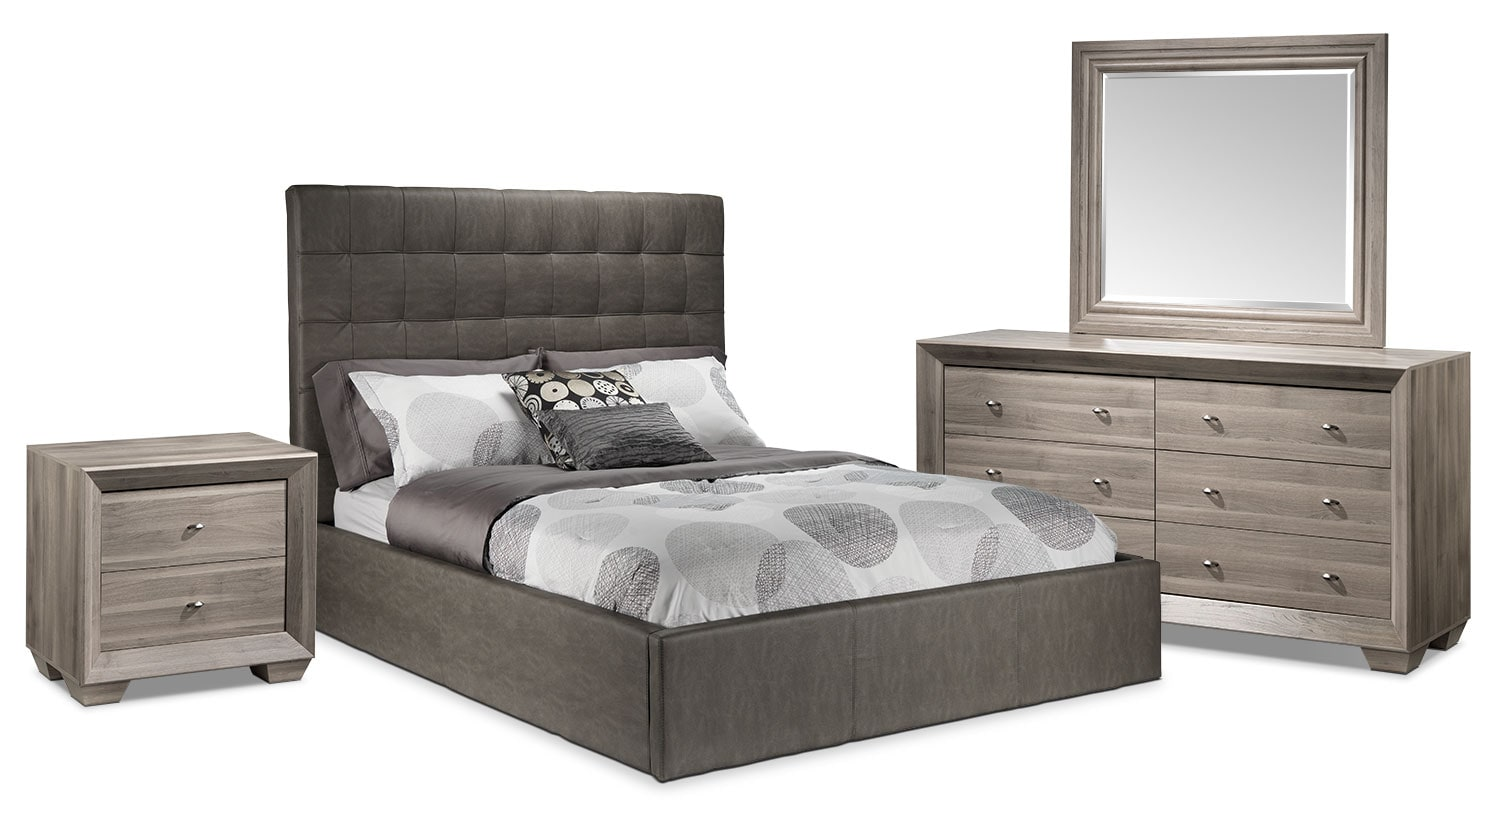 Bedroom Furniture - Franklin 5-Piece King Bedroom Set - Taupe